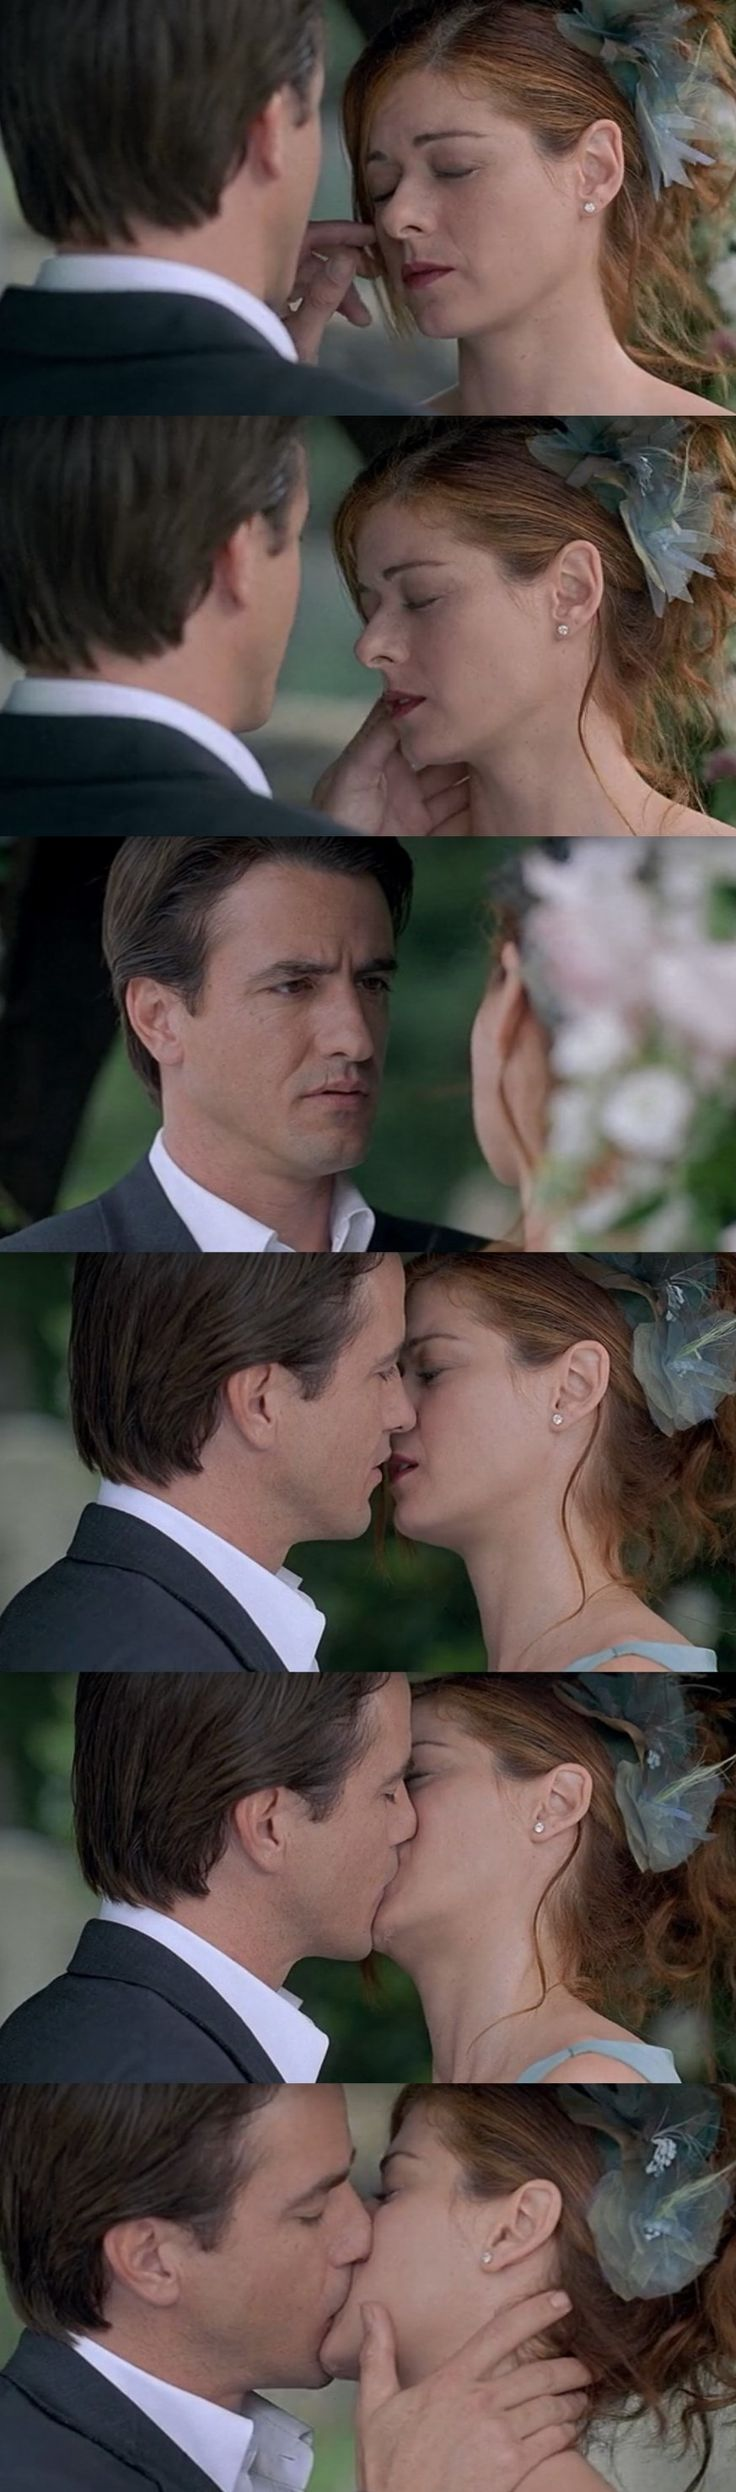 The Wedding Date - Nick (Dermot Mulroney) and Kate (Debra Messing)